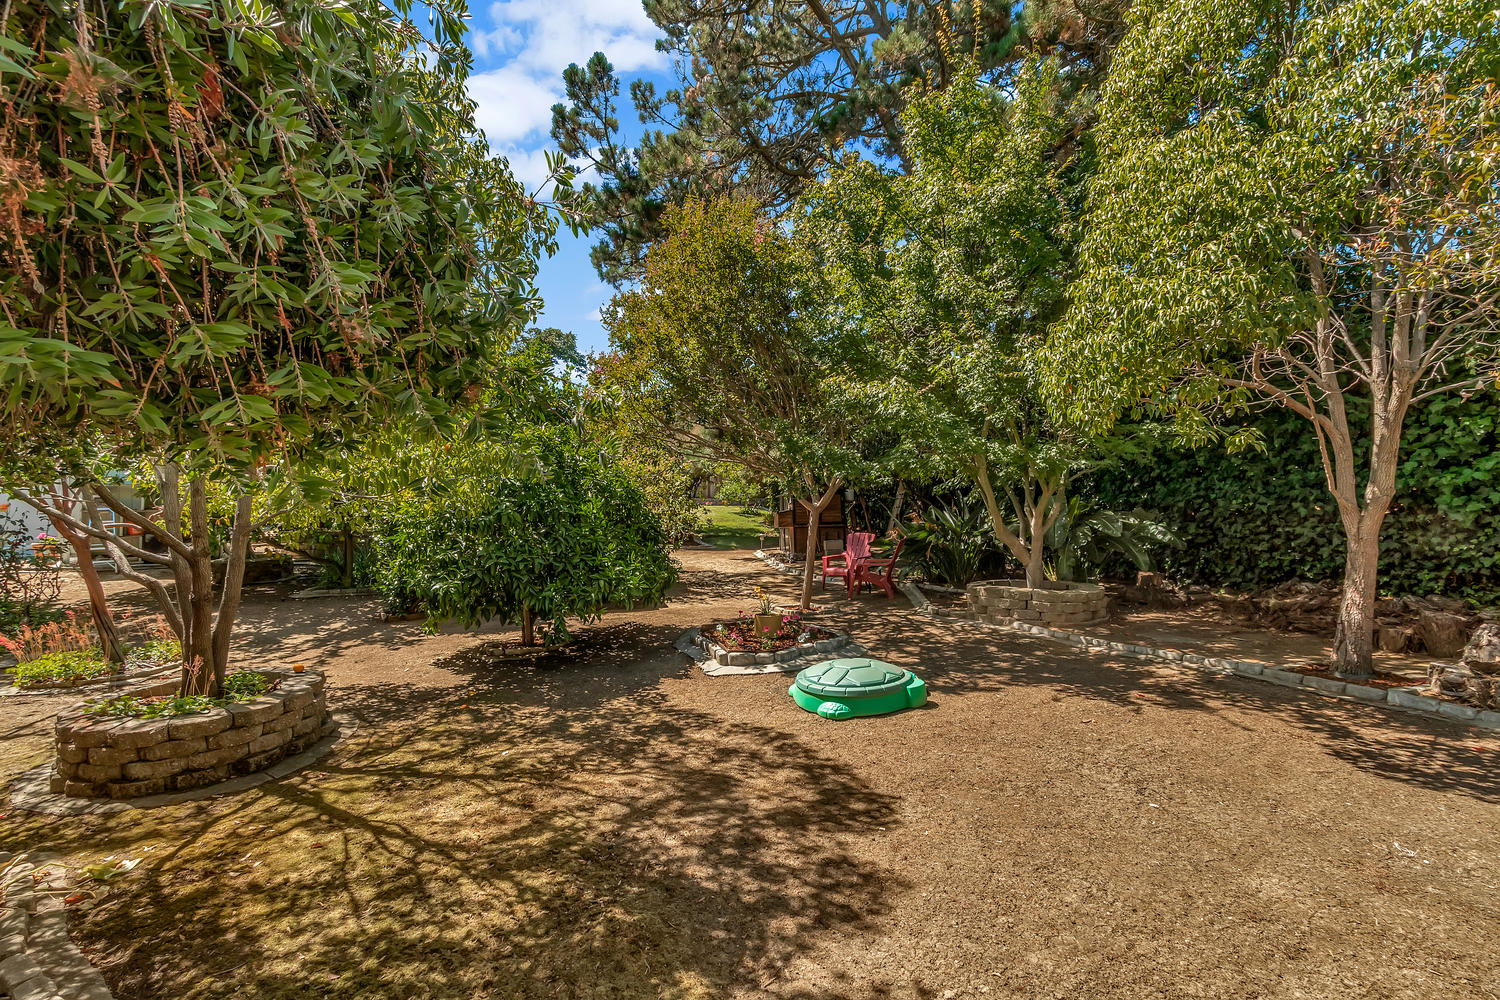 The lower level of backyard features a grove of Orange, Lemon, Maple and Crepe Myrtle trees for your enjoyment.